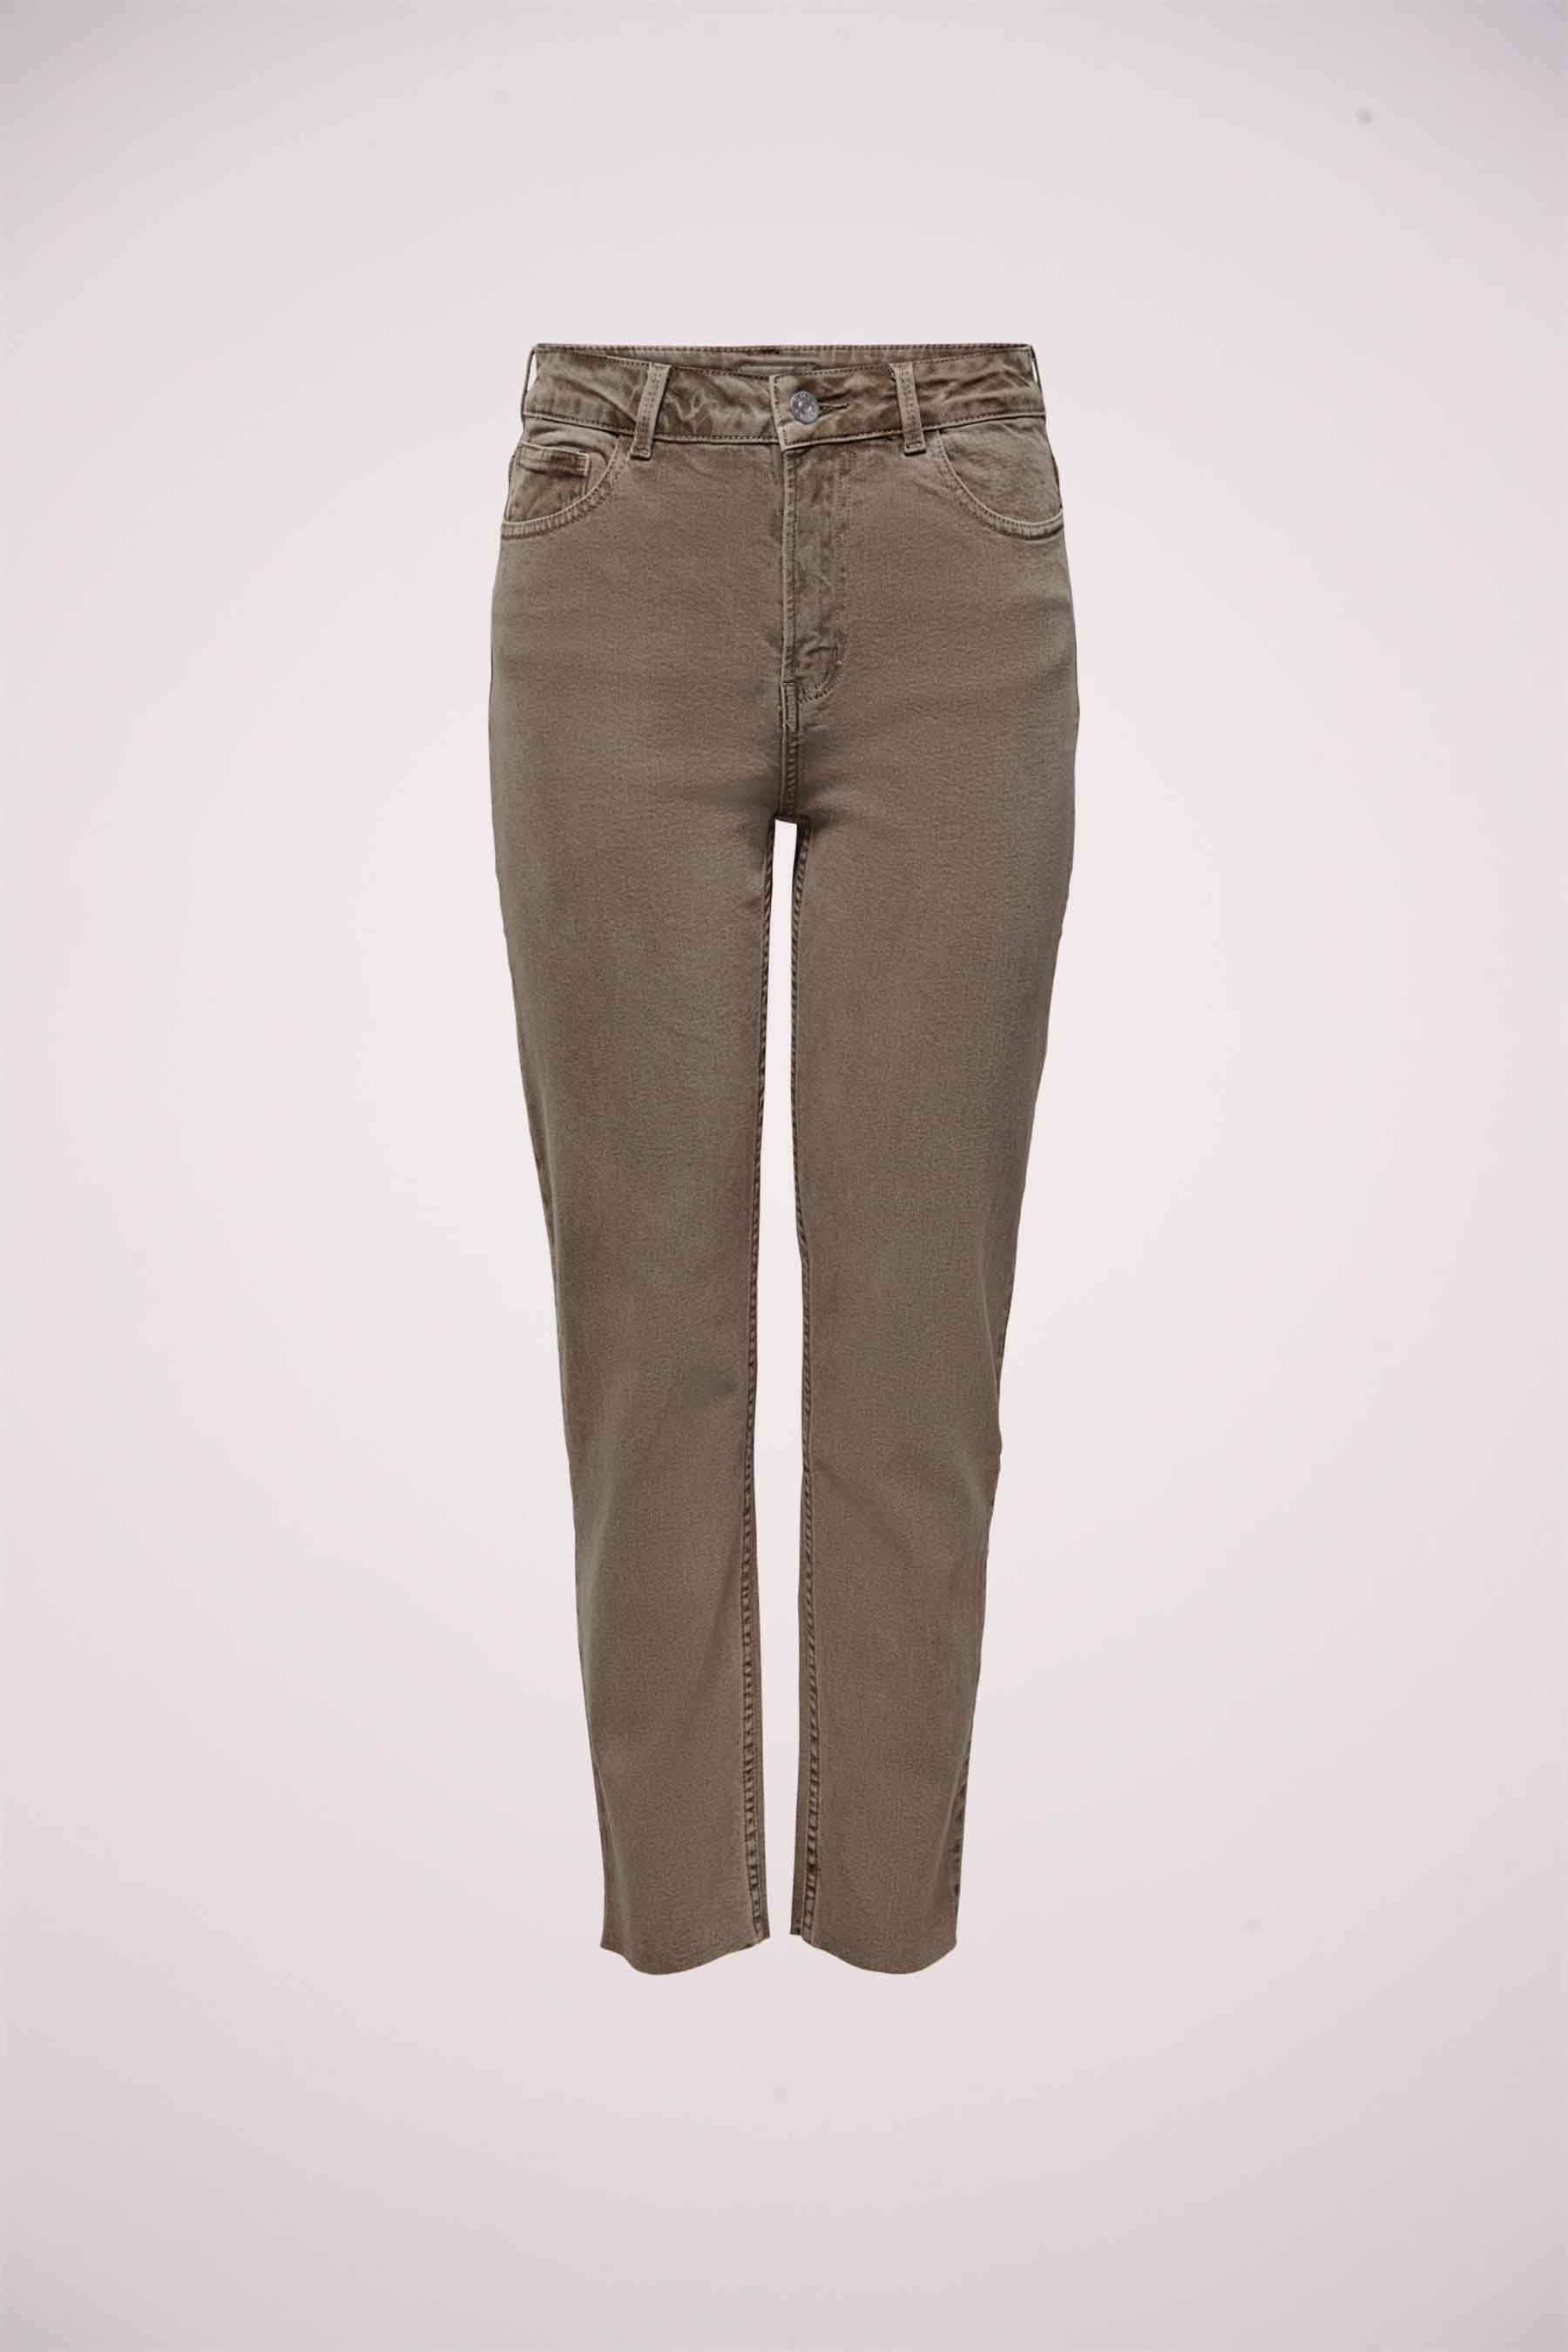 ONLY Broek, Straight Jeans, Dames, Maat: 27x32/31x32/32x32